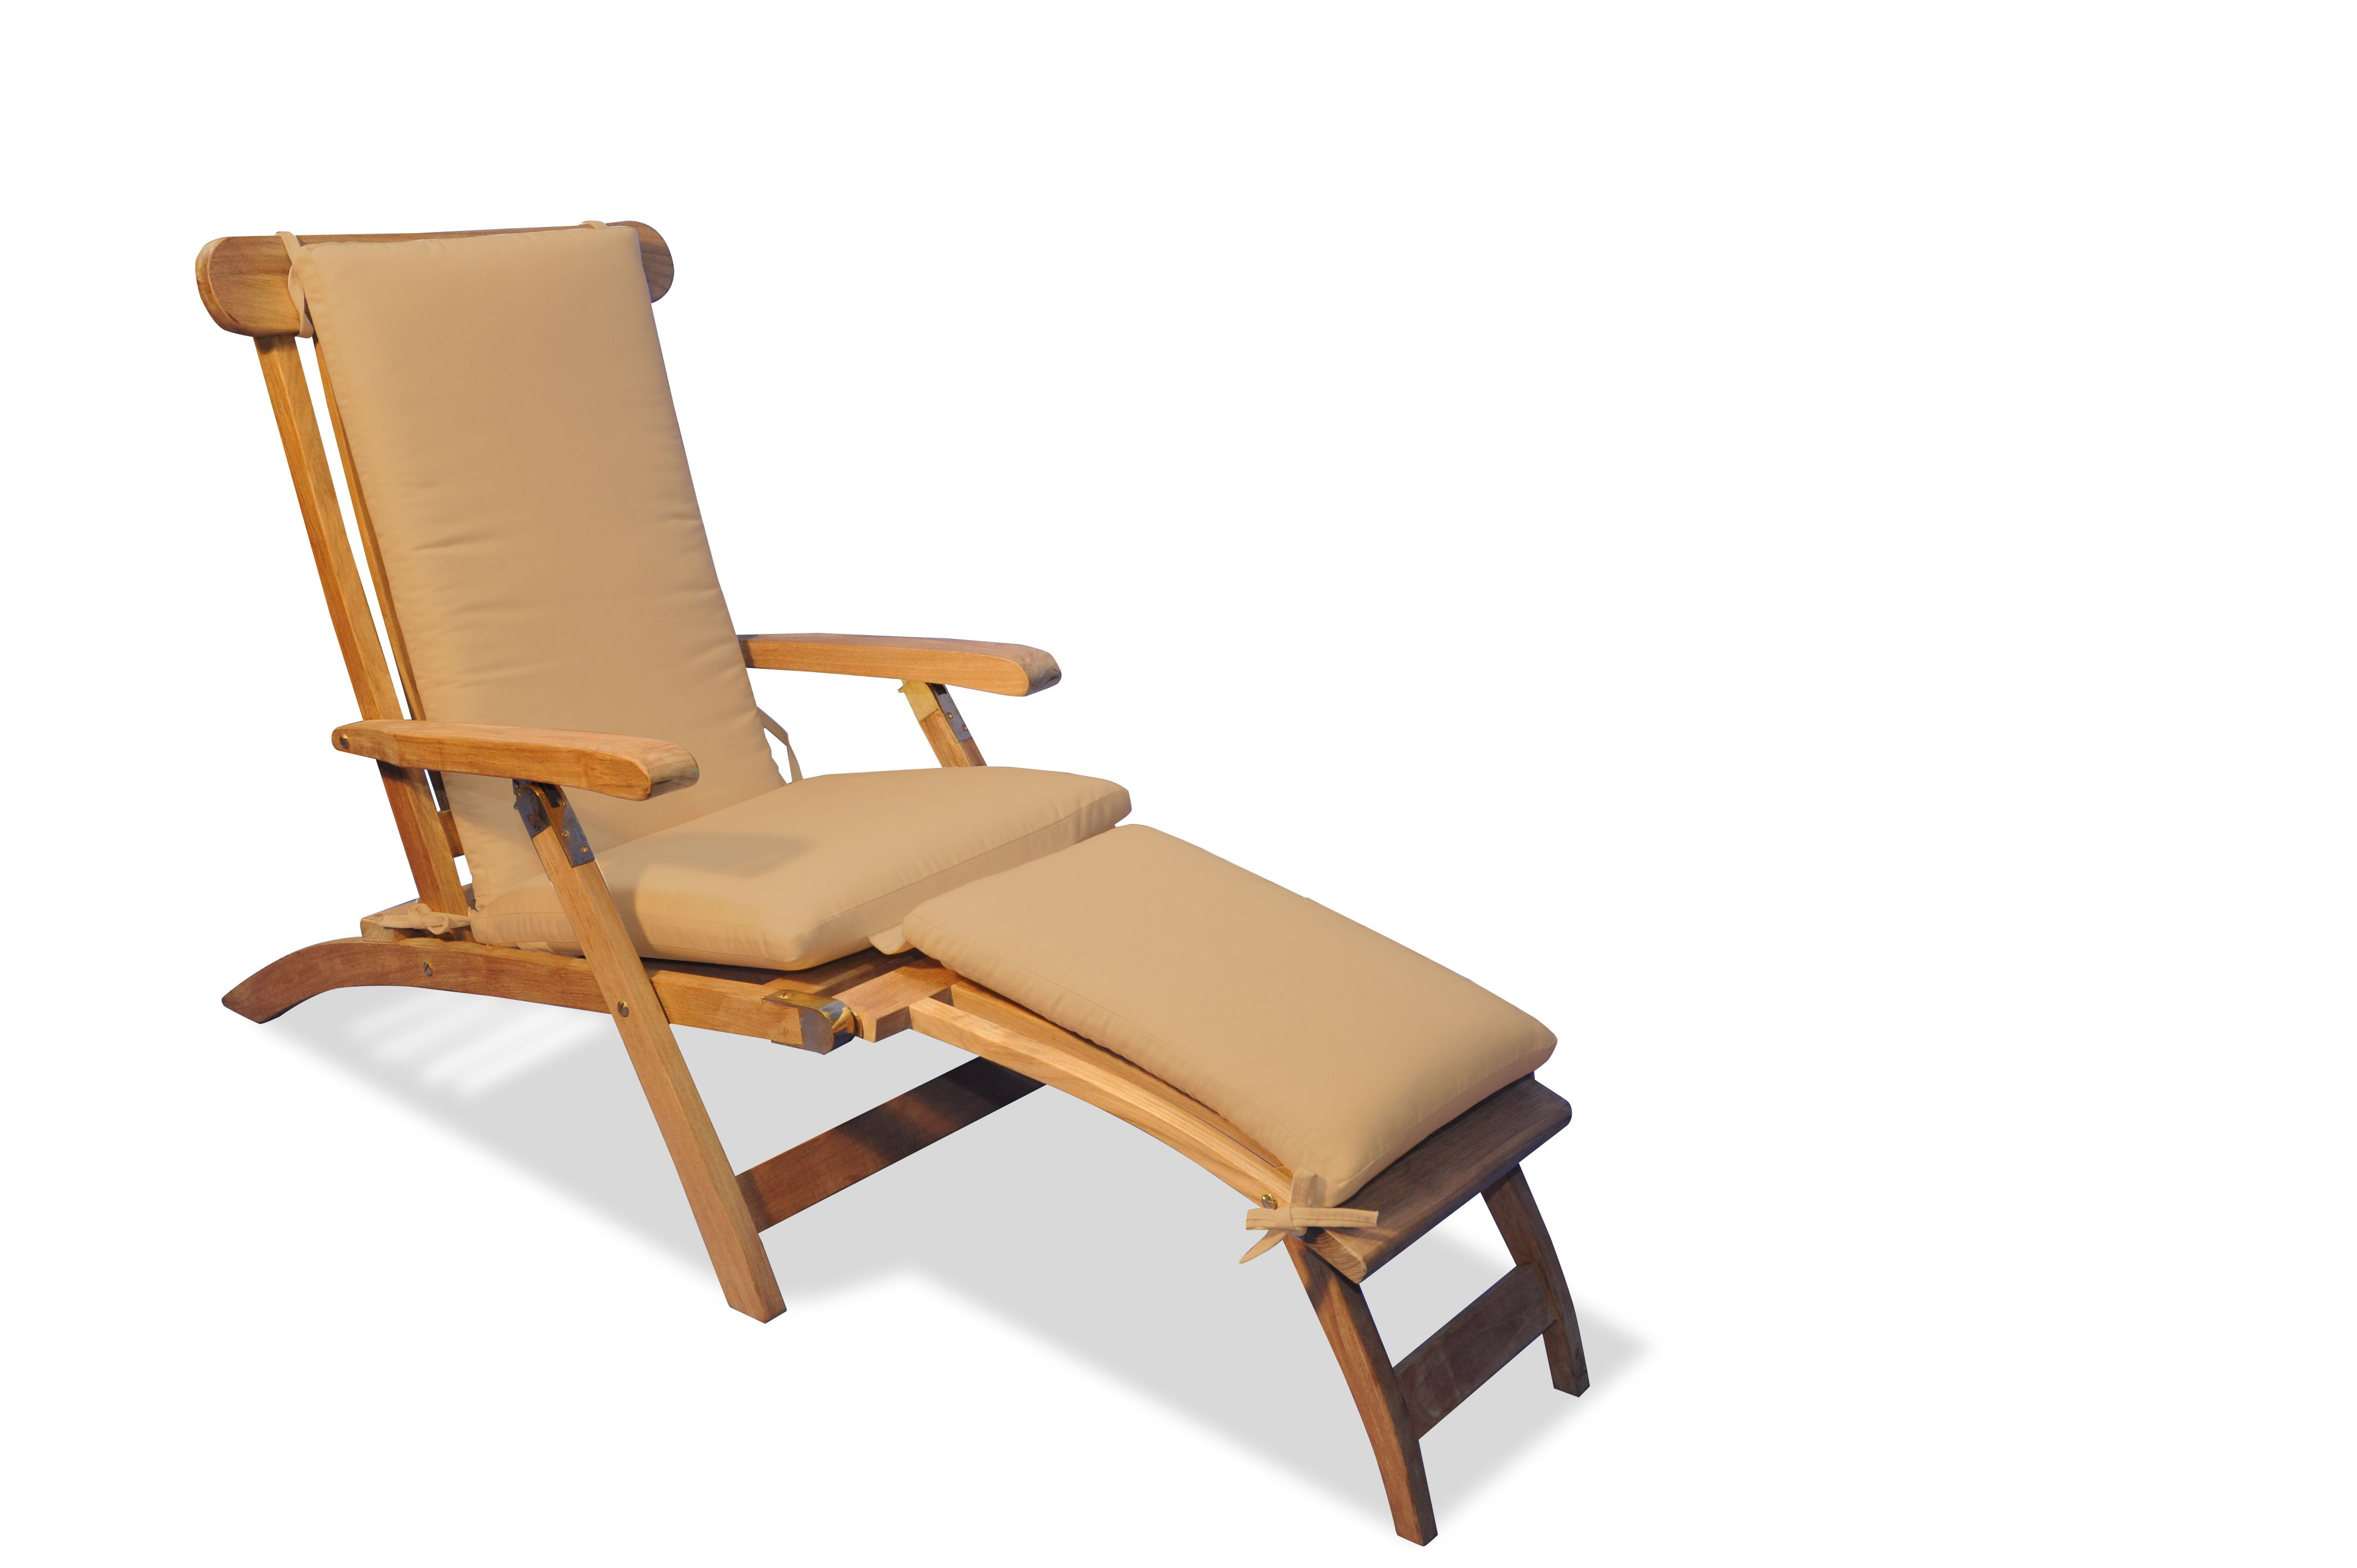 Swell Teak Steamer Chair Chaise Lounge And Cushion Set Lounge Theyellowbook Wood Chair Design Ideas Theyellowbookinfo